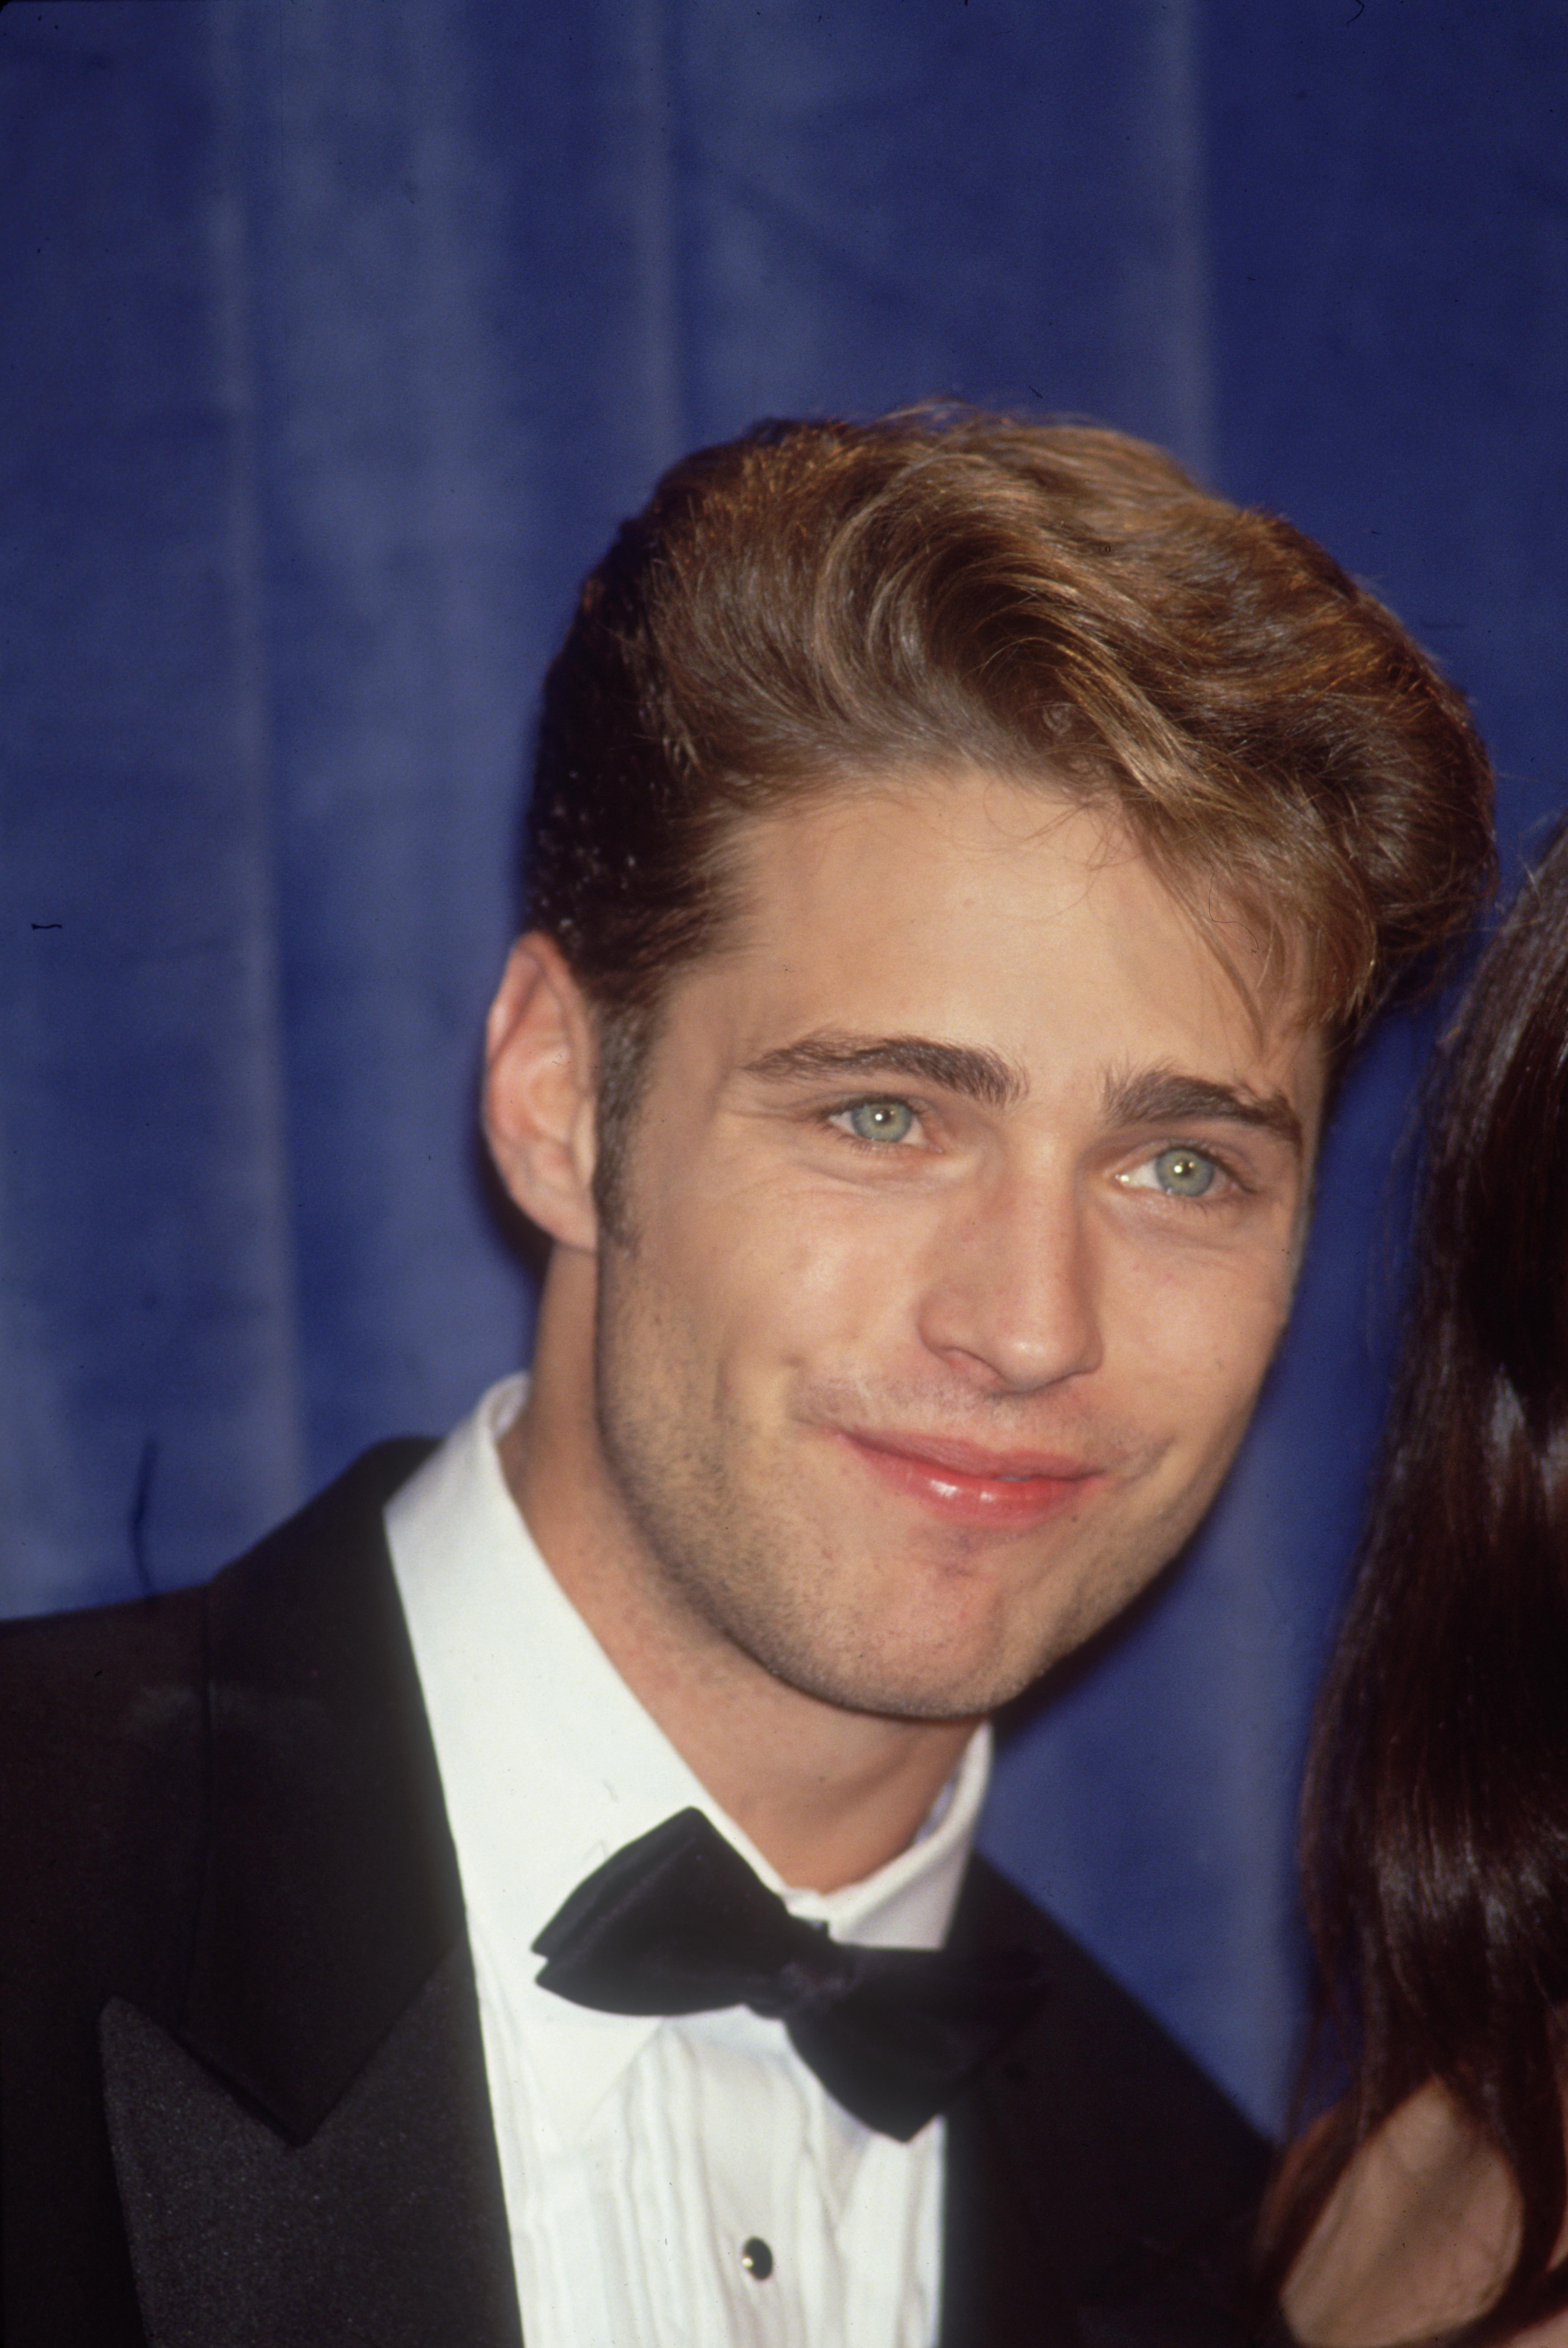 Jason Priestley photo, pics, wallpaper - photo #